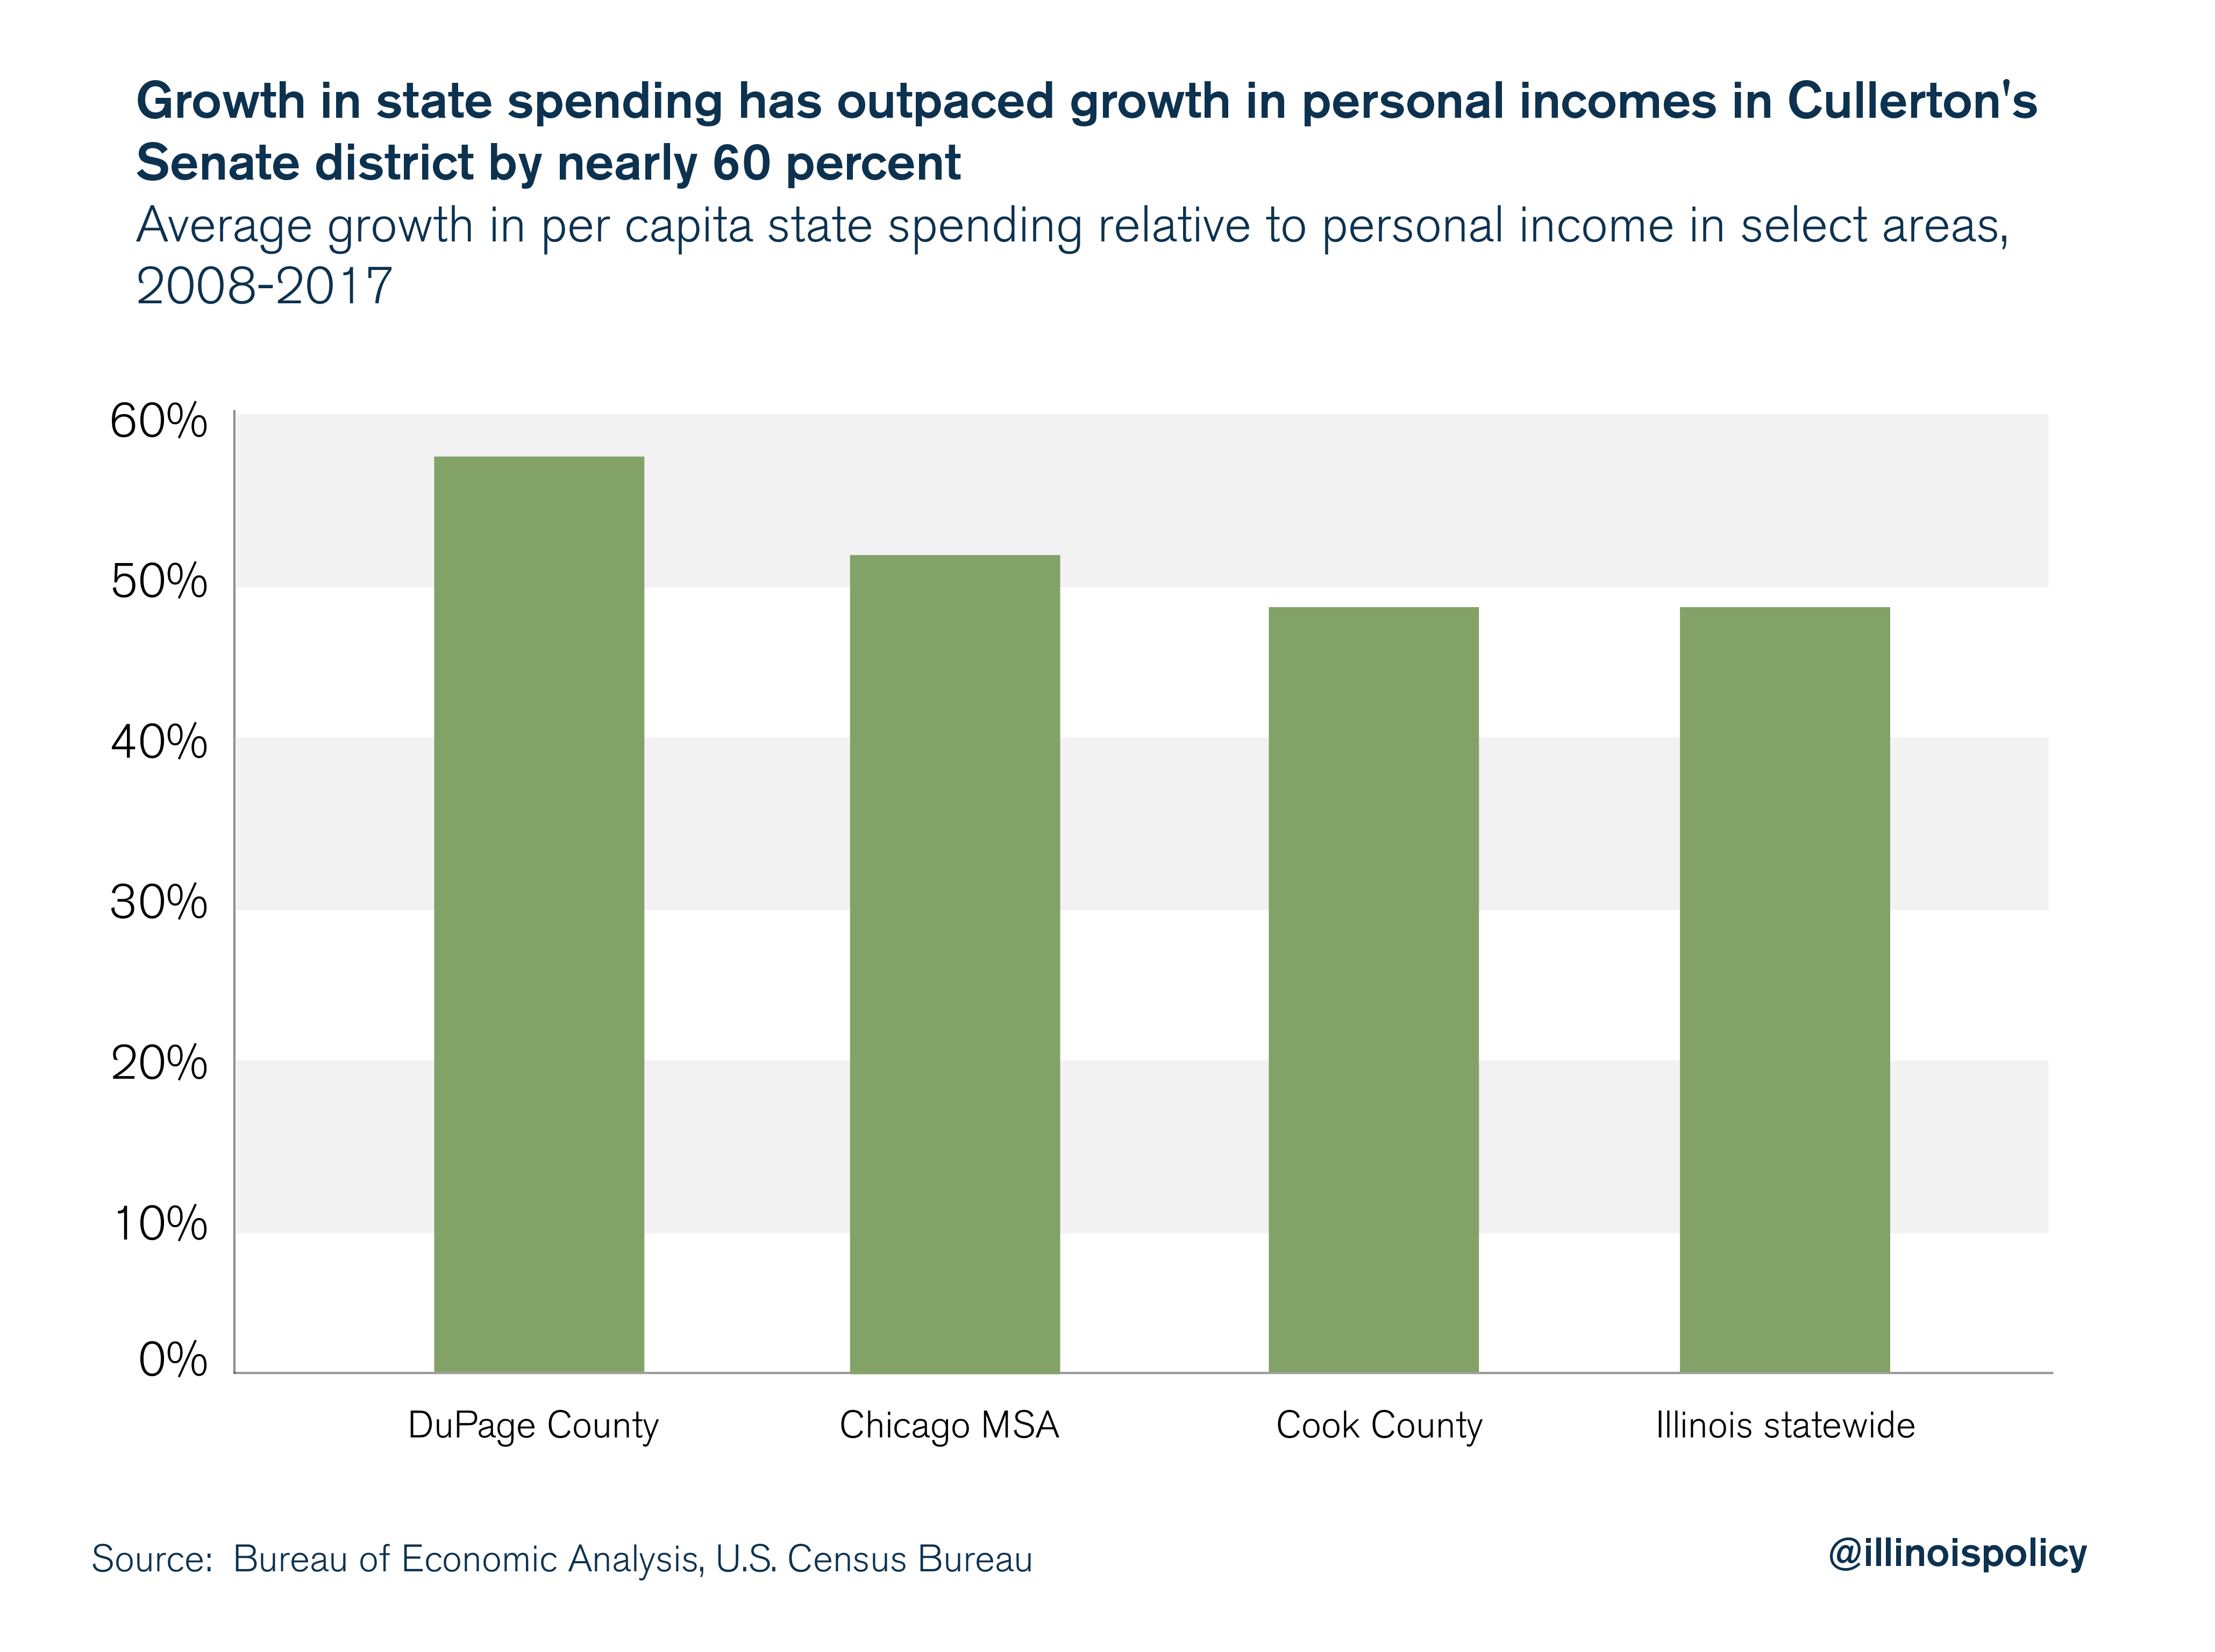 Growth in state spending has outpaced growth in personal incomes in Cullerton's Senate district by nearly 60 percent